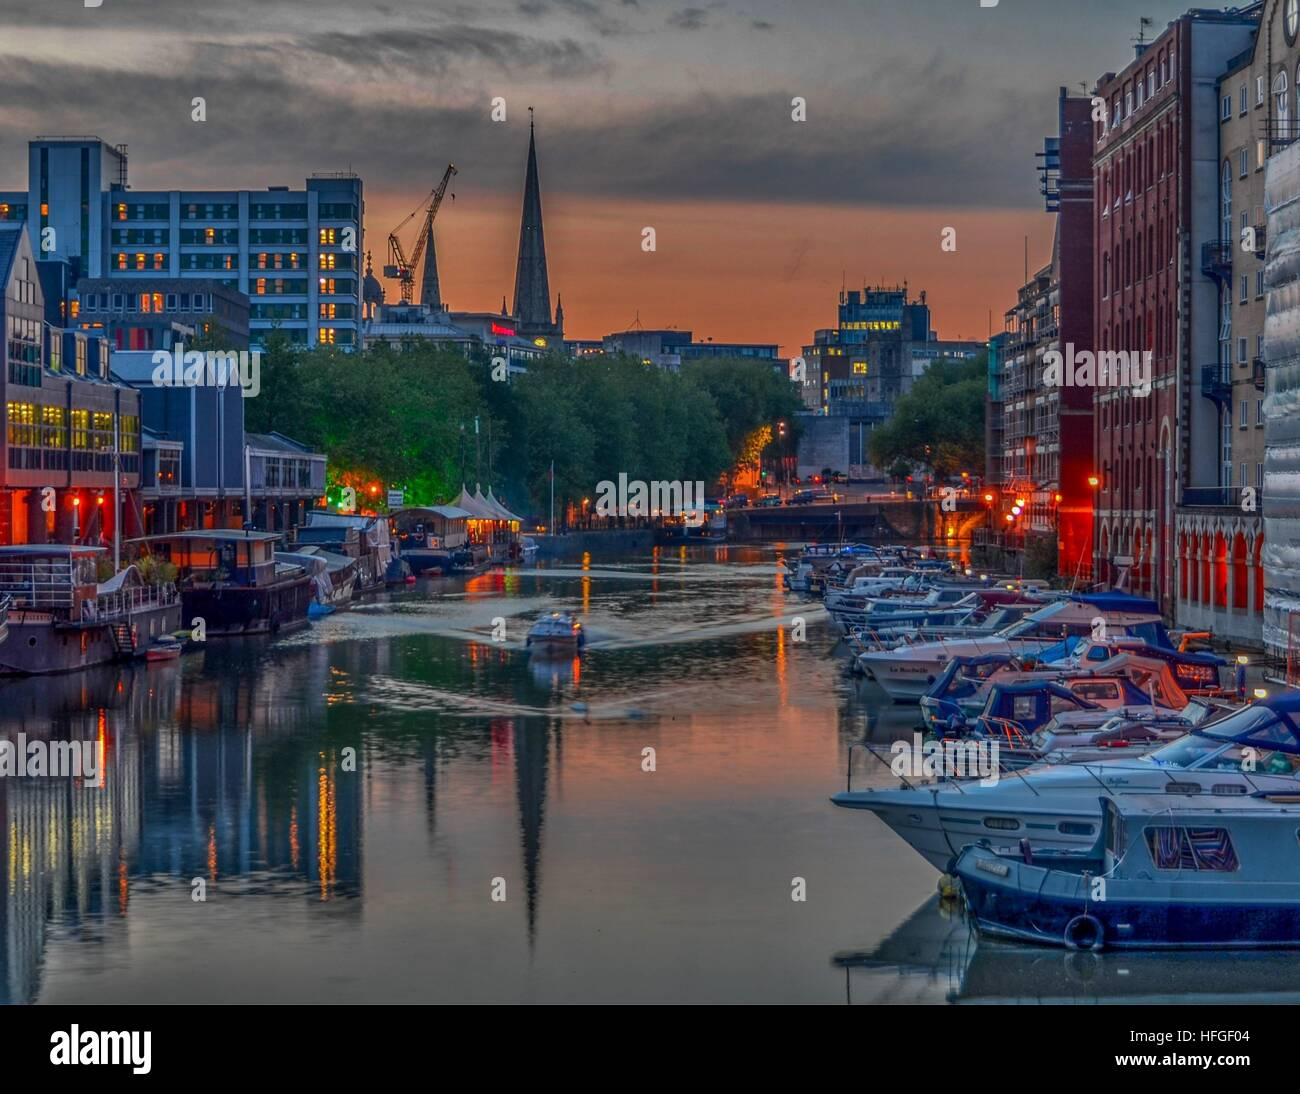 Urban Sofa Oosterwolde Kees Stock Photos Kees Stock Images Page 7 Alamy